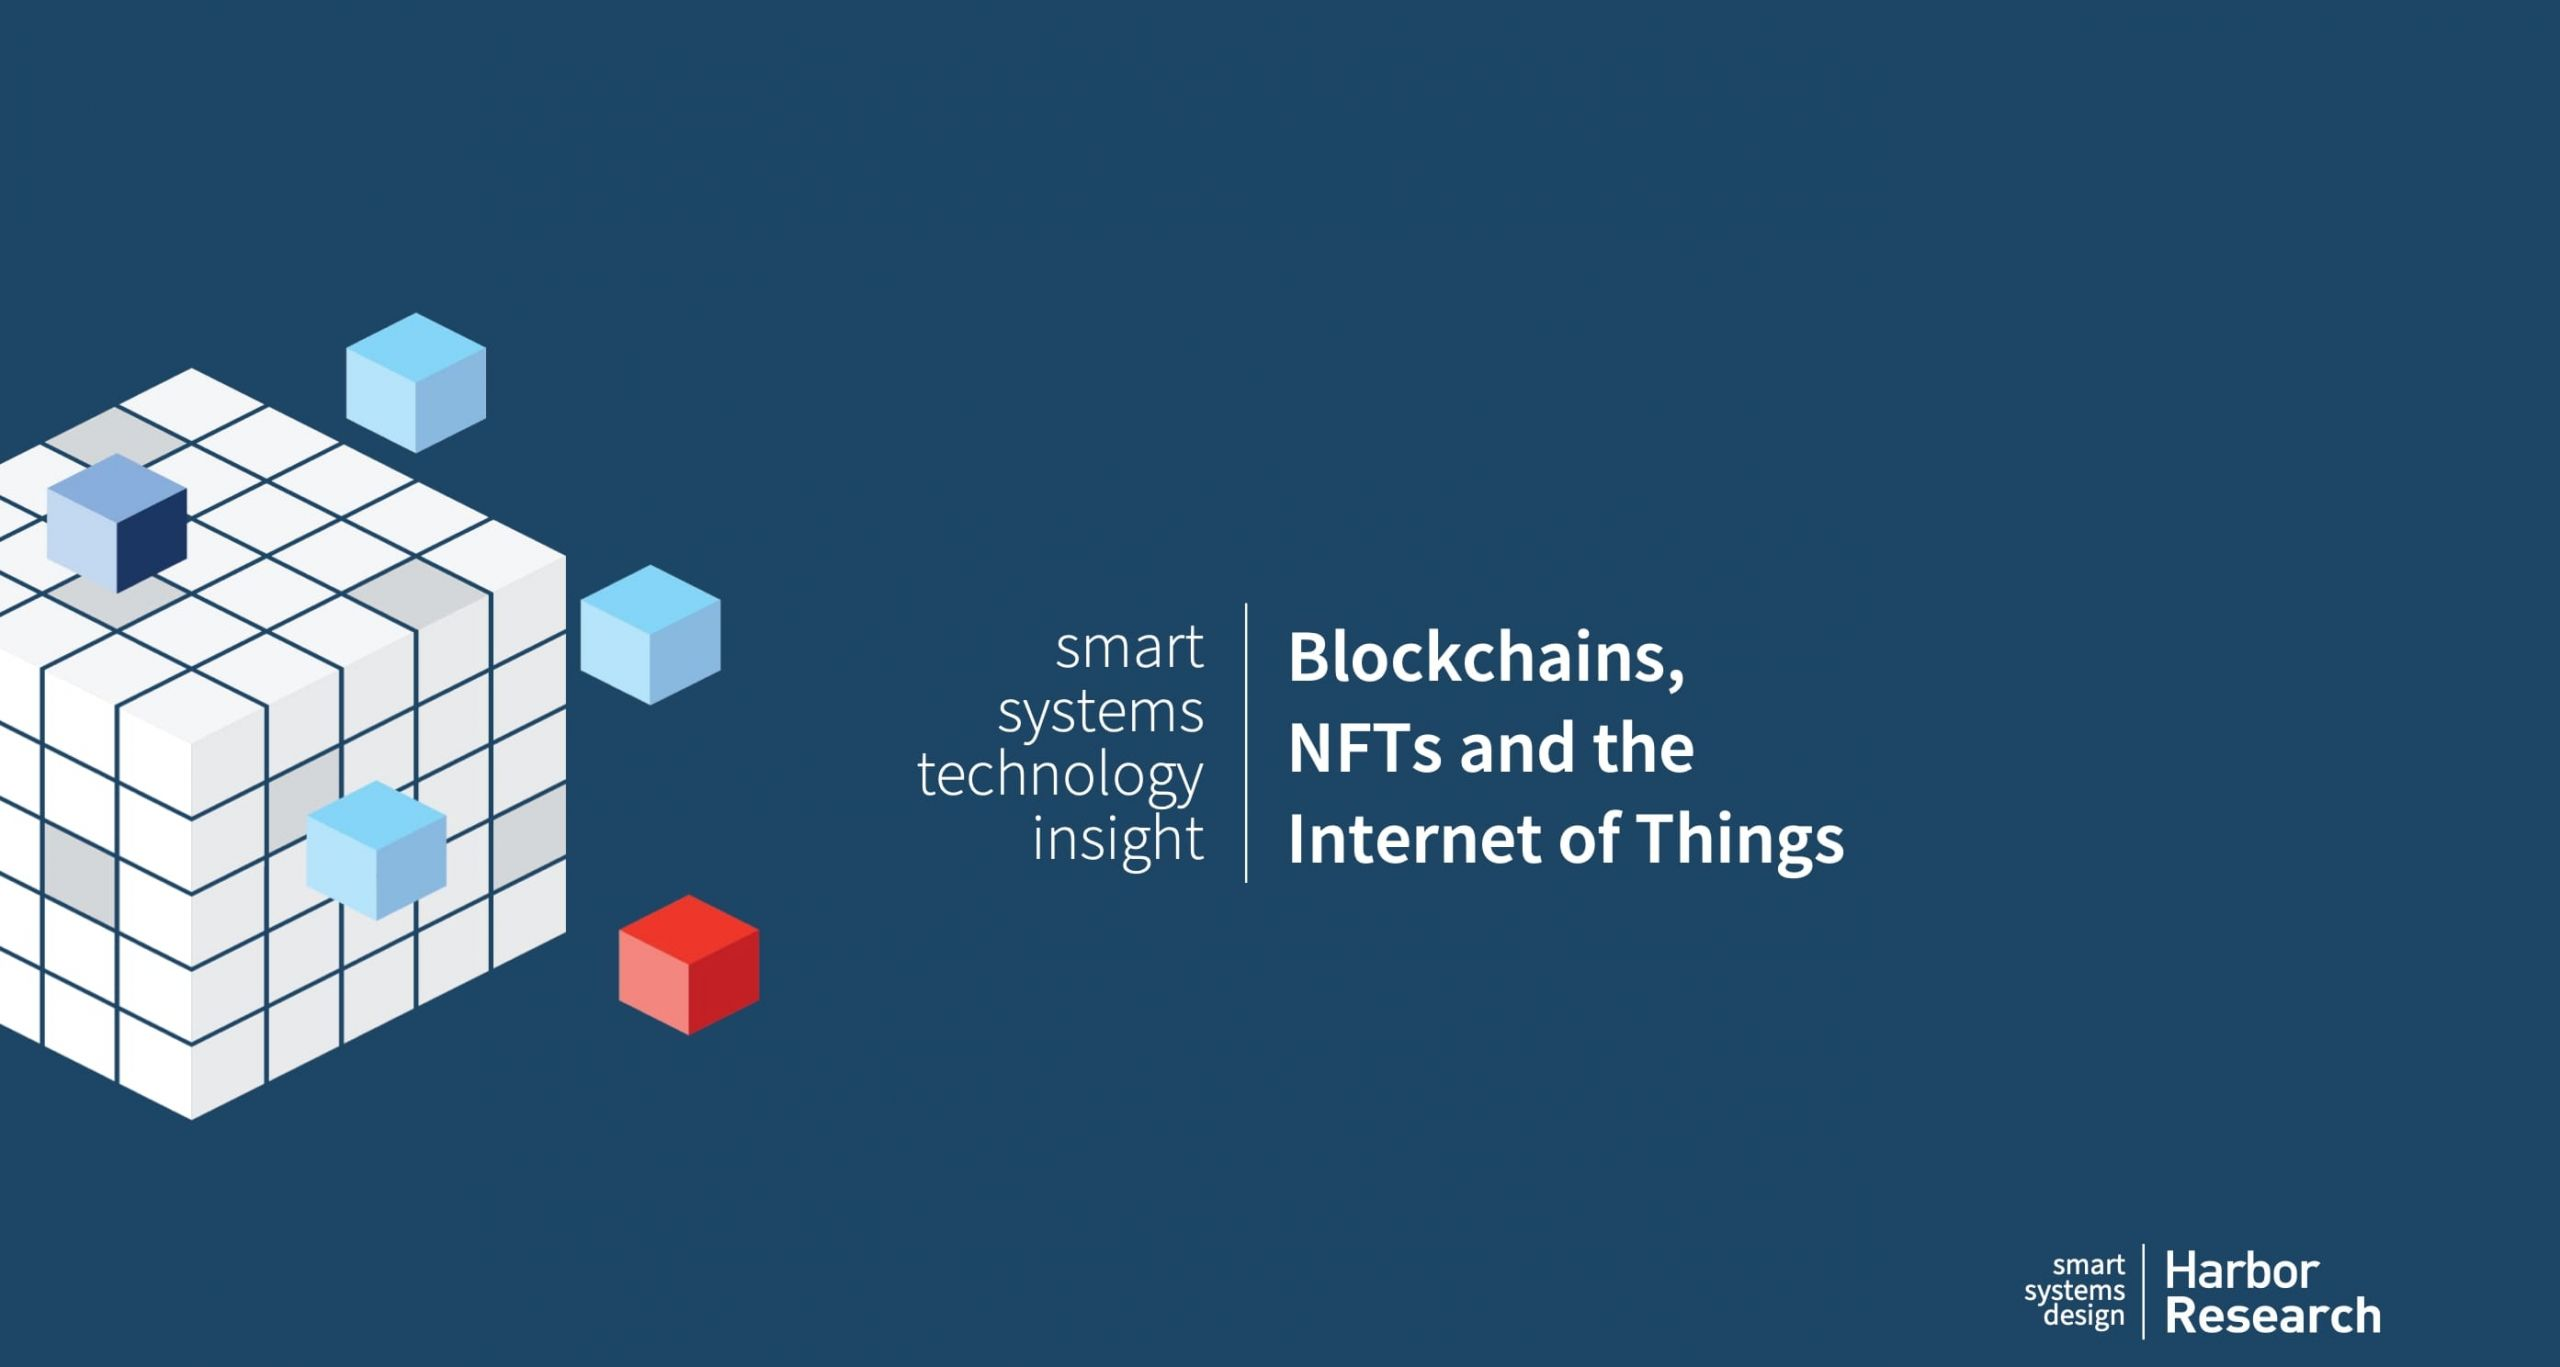 Blockhains NFTs and the IoT cover